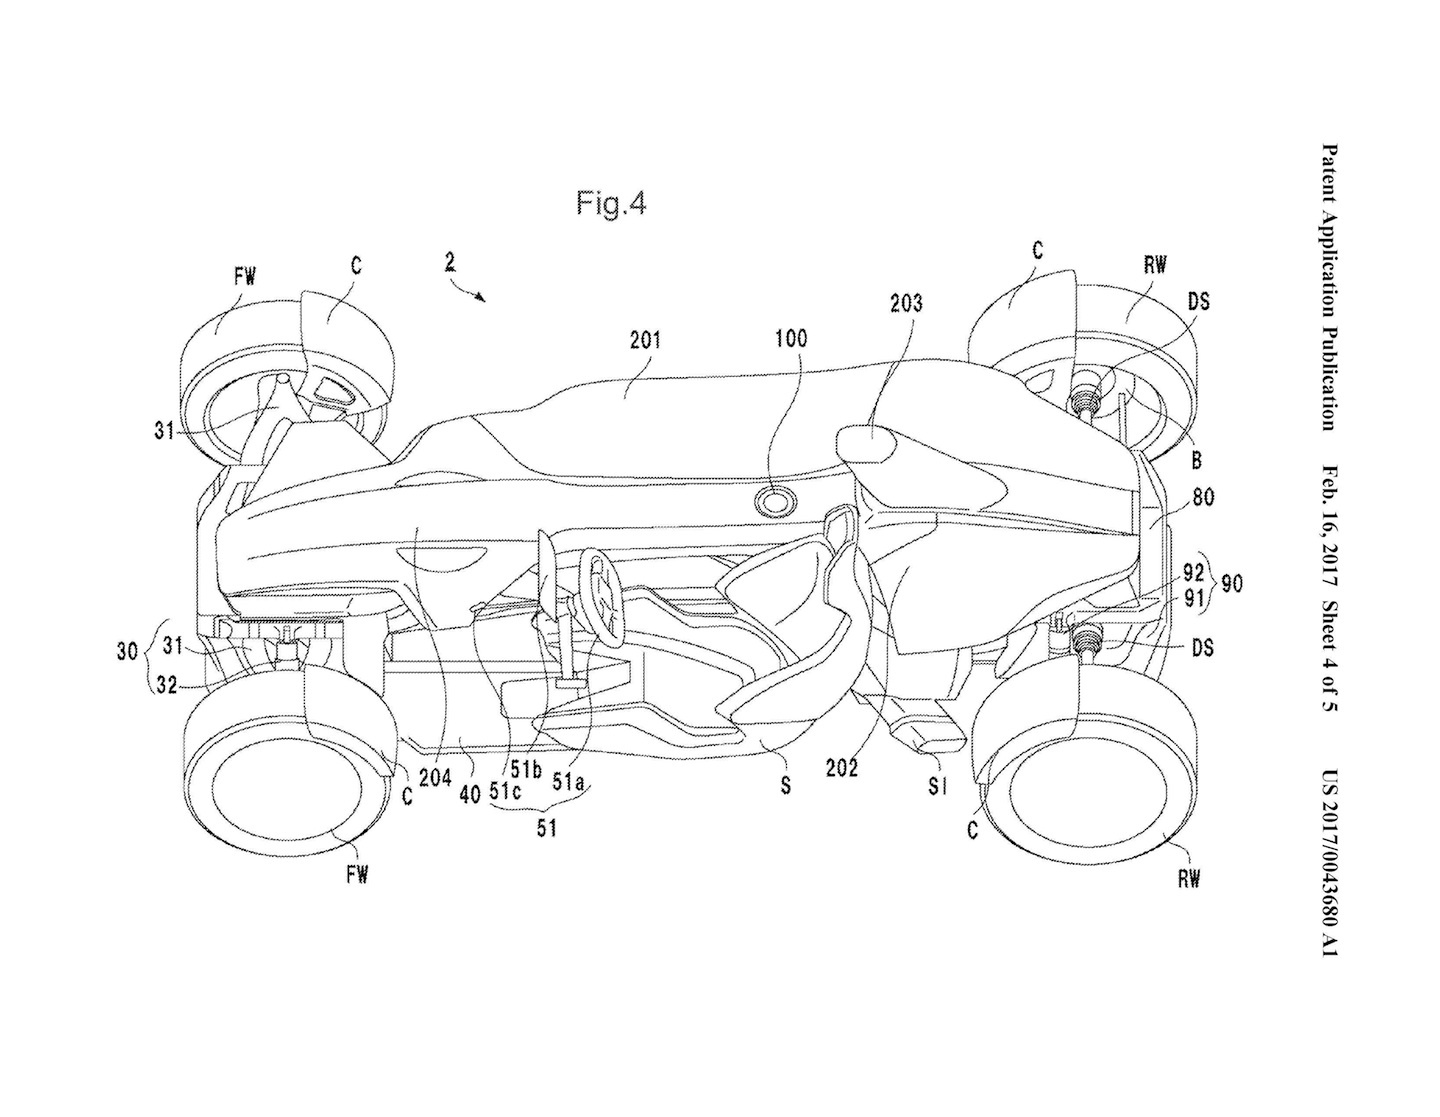 Honda Mid Engine Car Patent Drawings 0